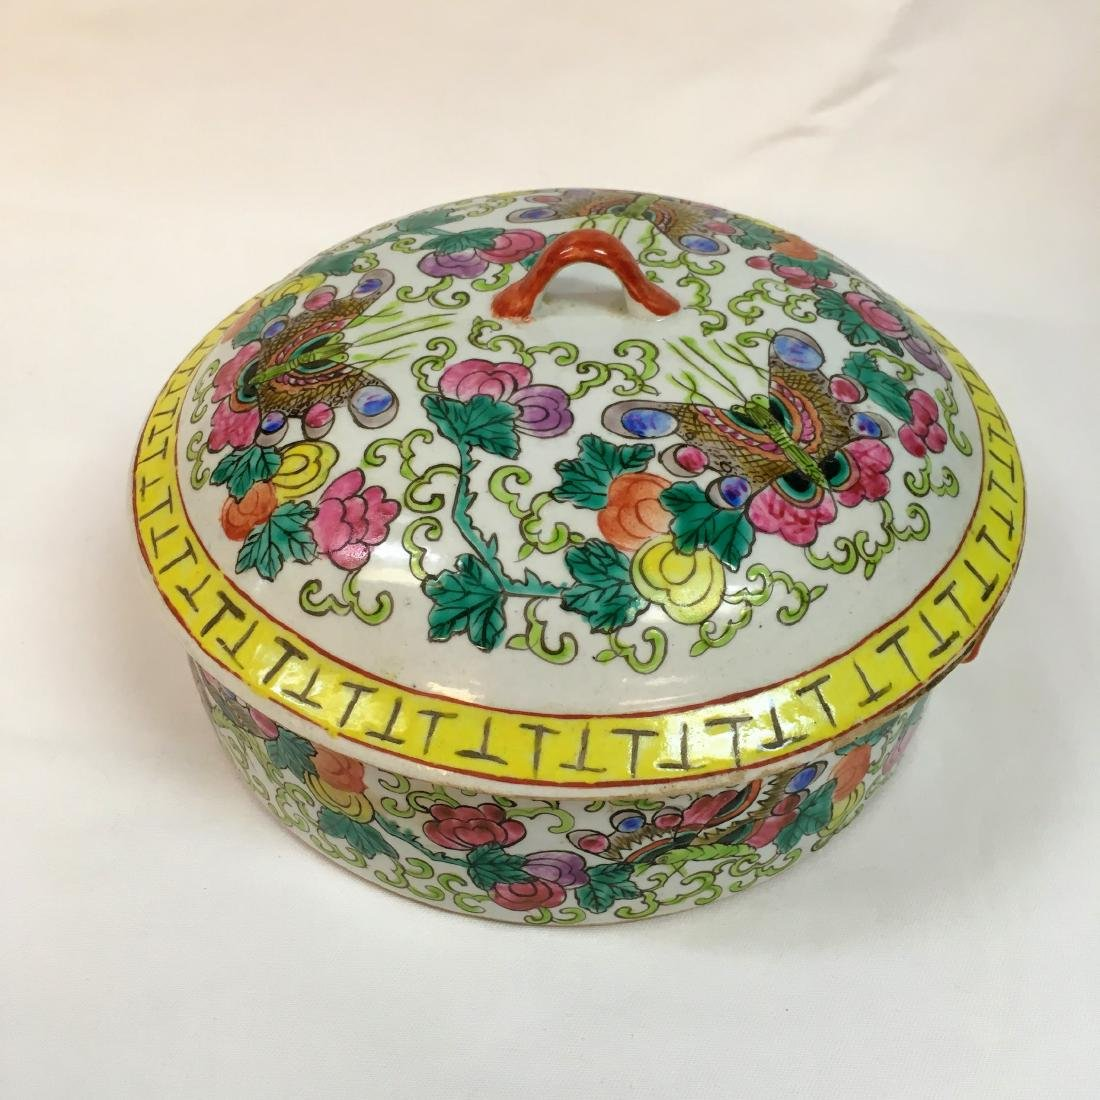 Vitange chinese enameled porcelain covered trinket box